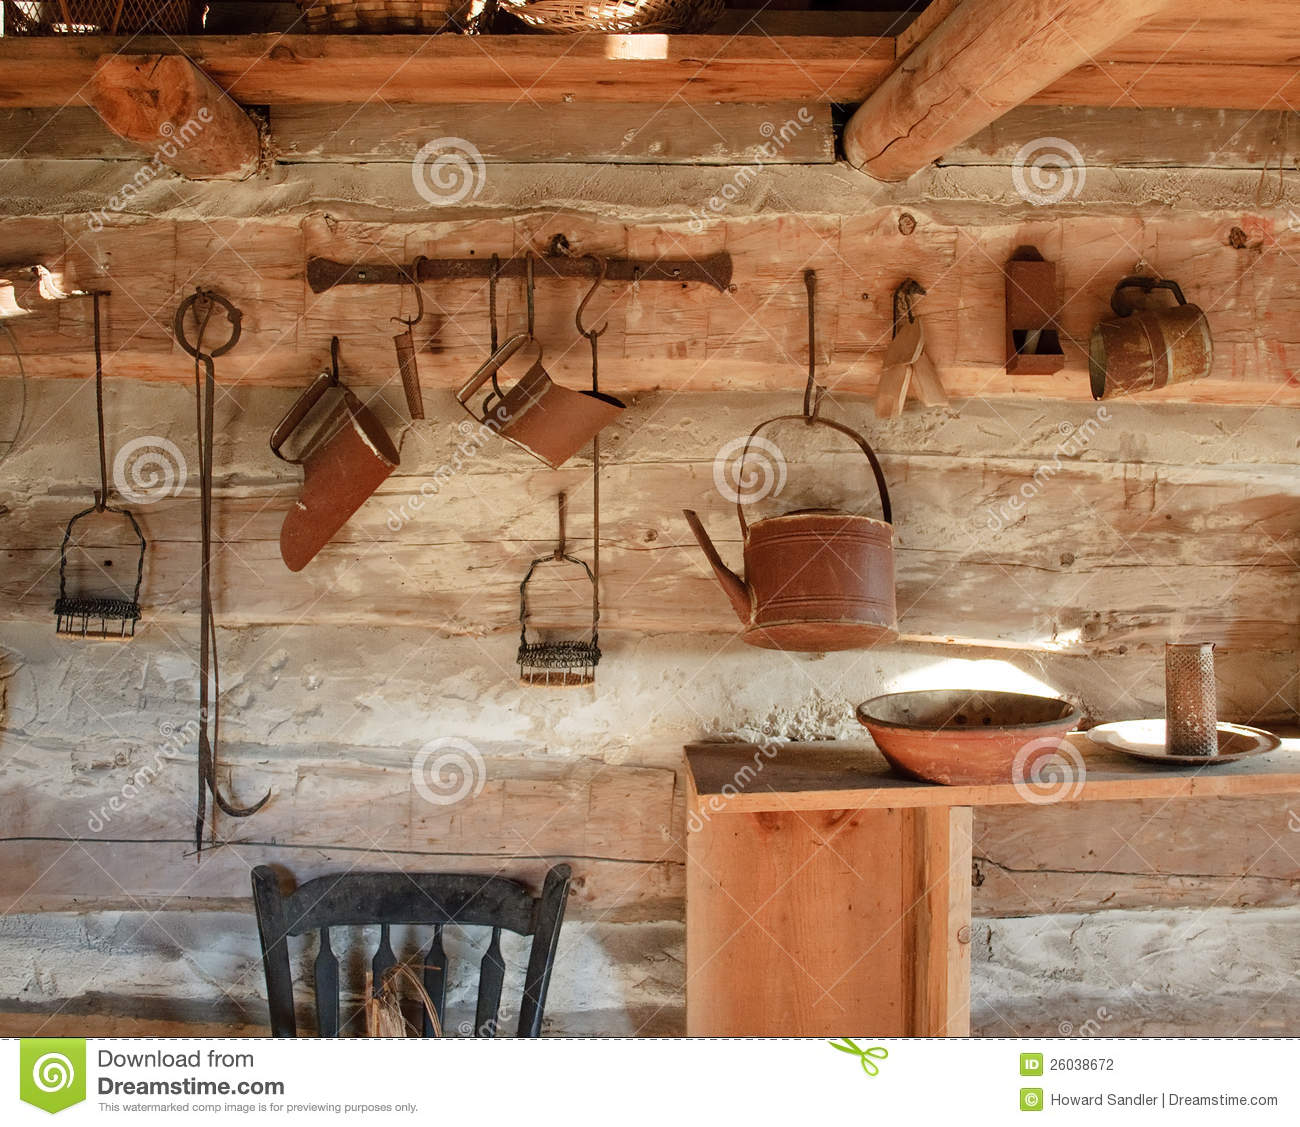 Vintage Kitchen Photography: Vintage Rustic Kitchen, Circa 1800s Stock Photography